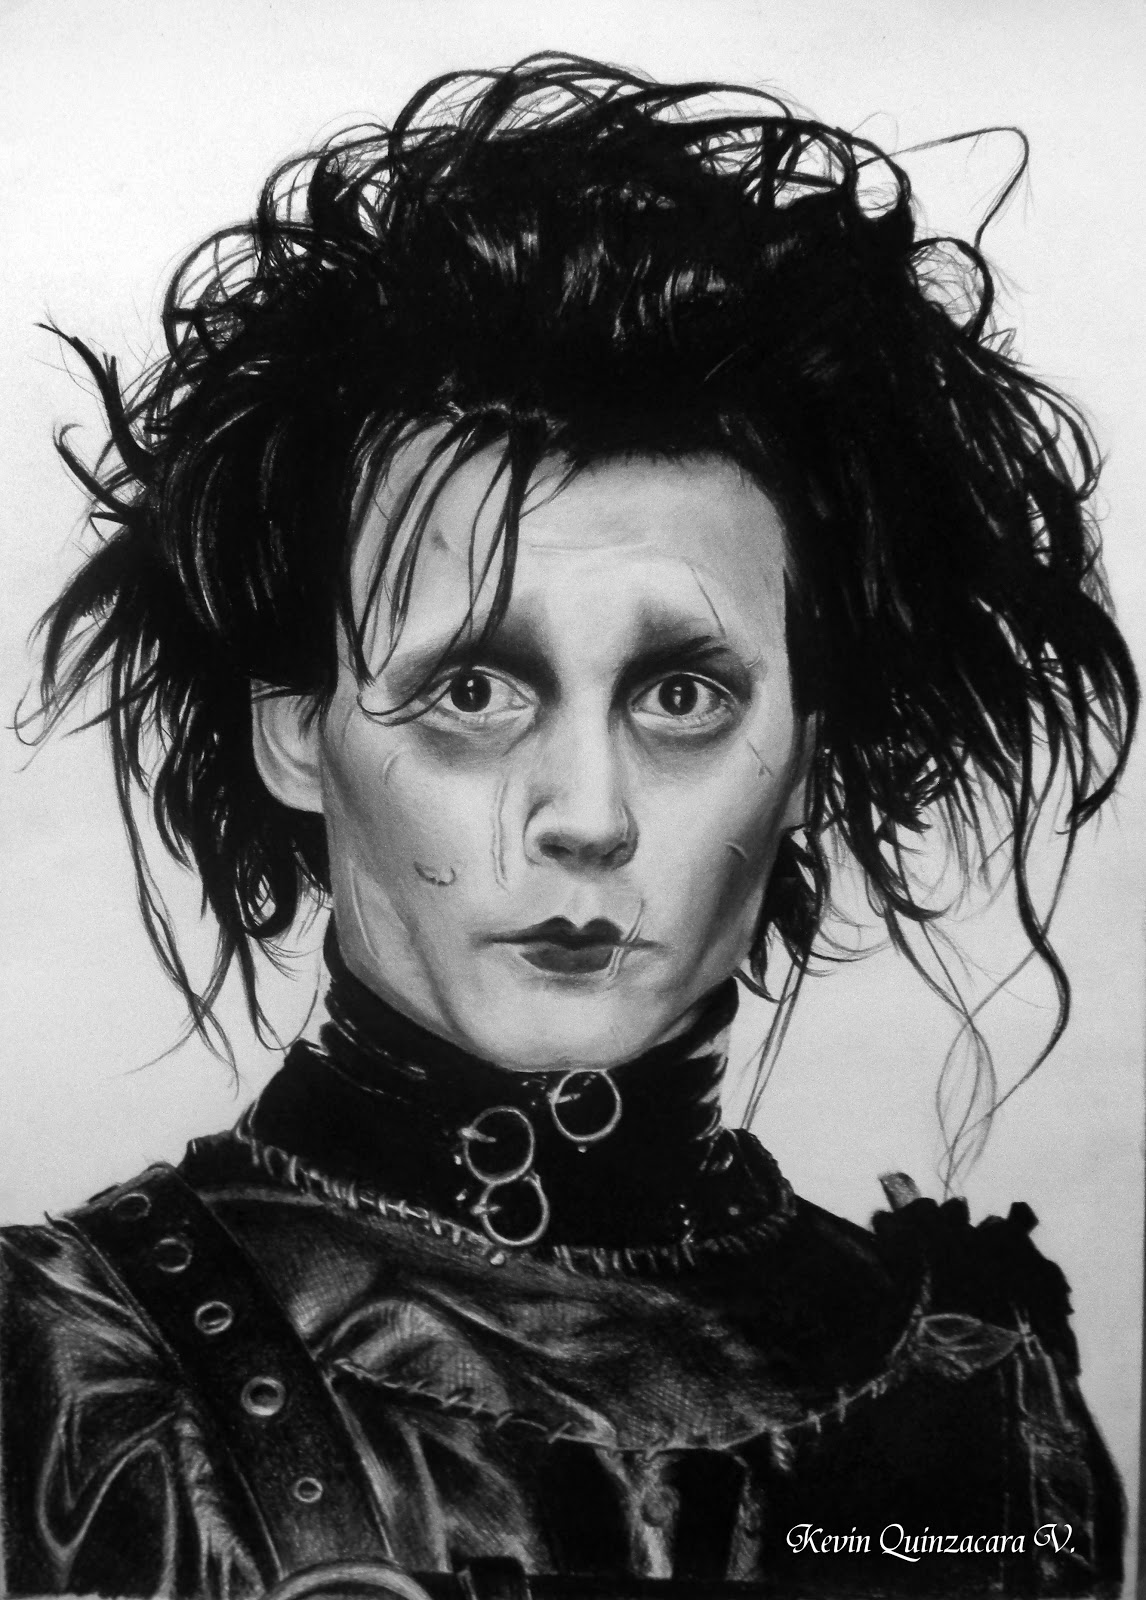 analysis of edward scissorhands Extracts from this document introduction film analysis edward scissorhands - katrin dreher edward scissorhands by tim burton is a fantasy story contrasting.